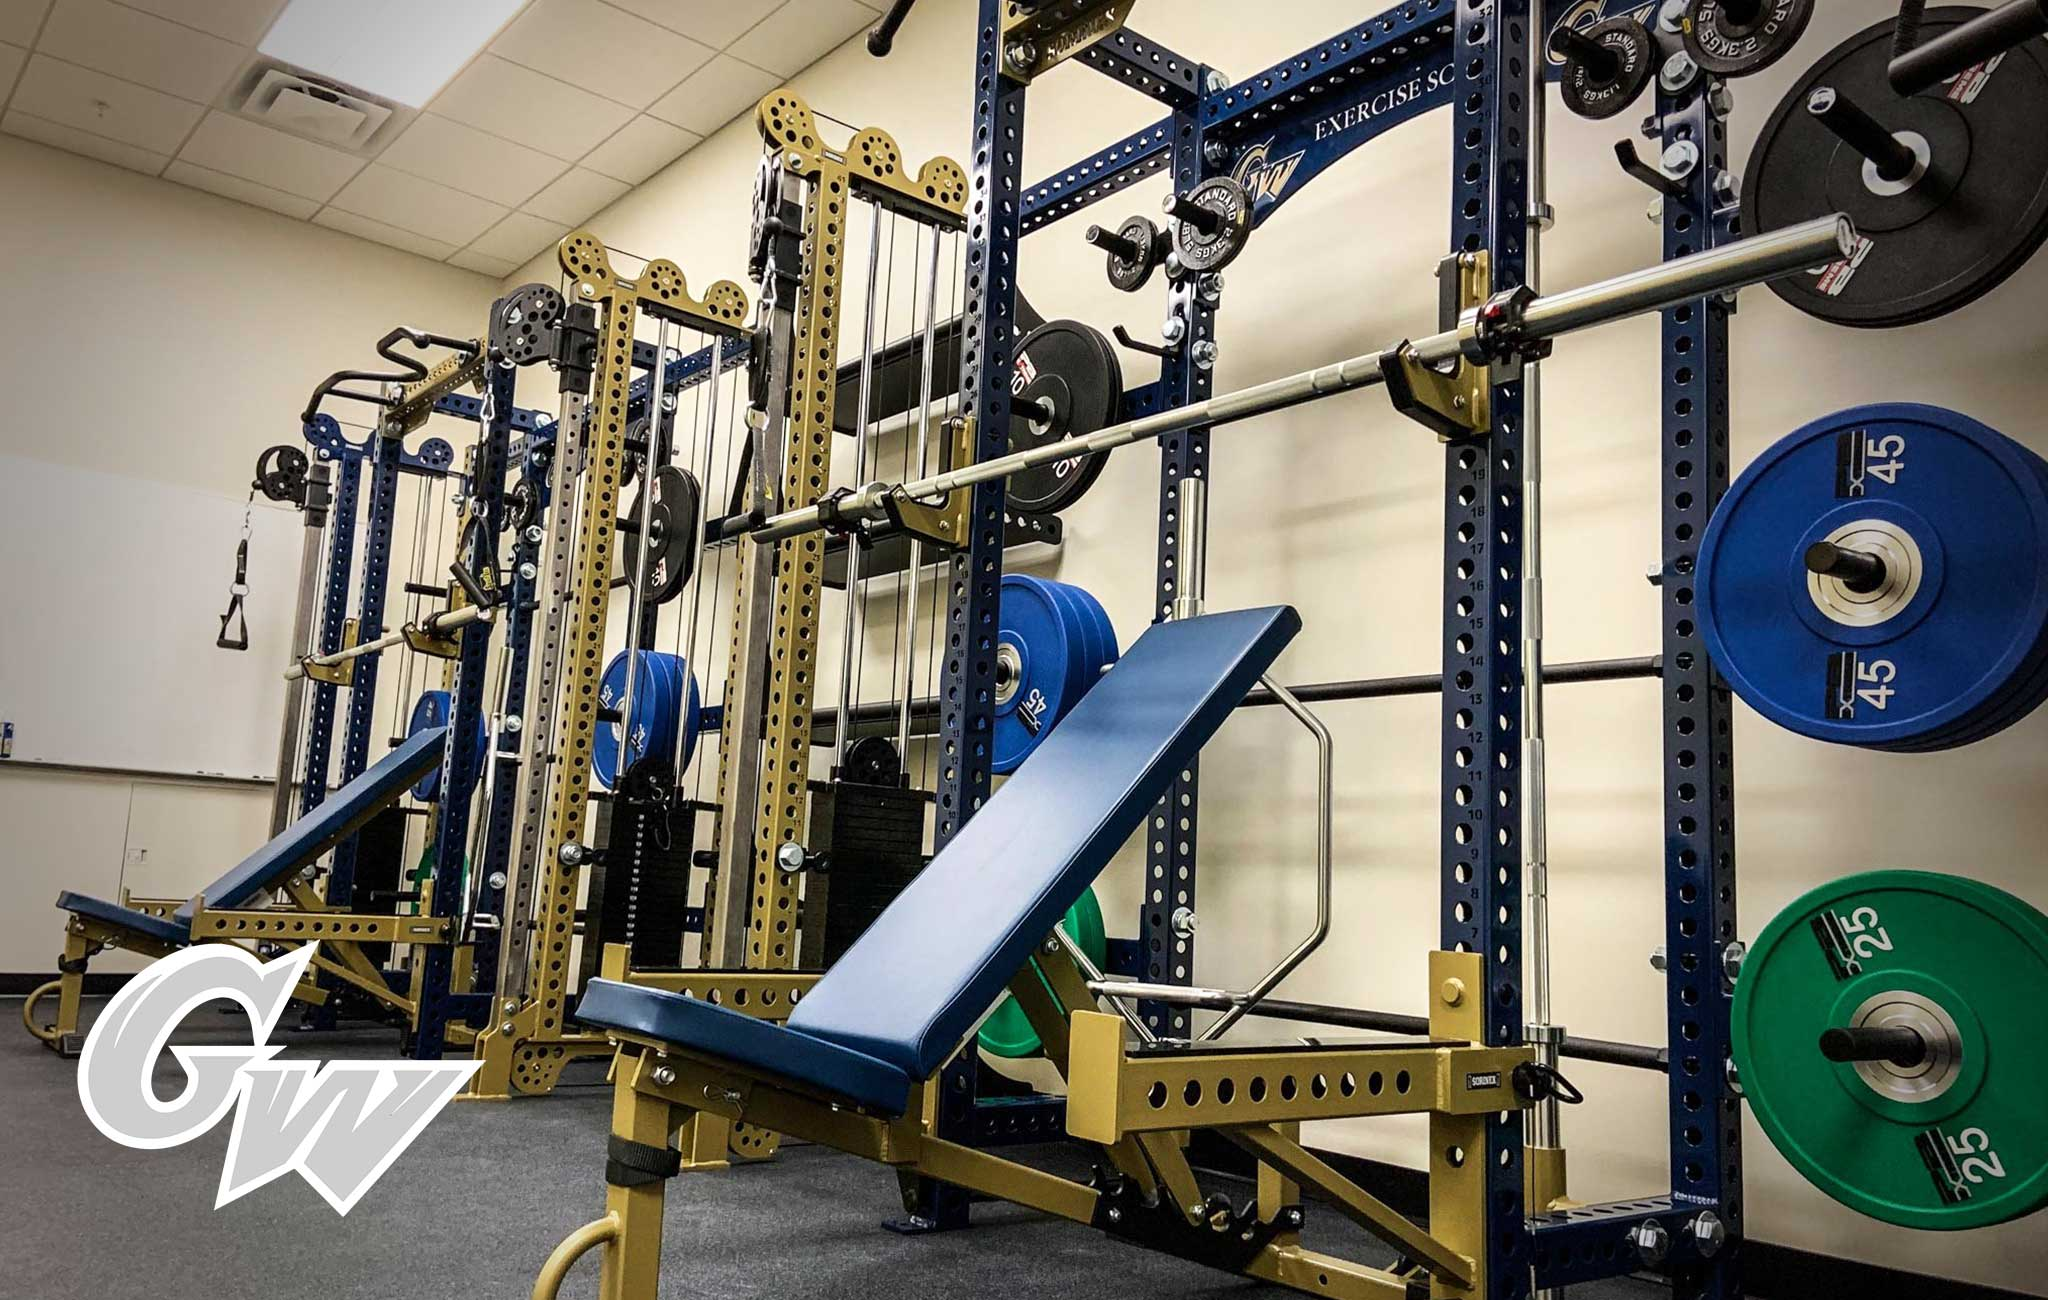 George Washington University Sorinex strength and conditioning facility